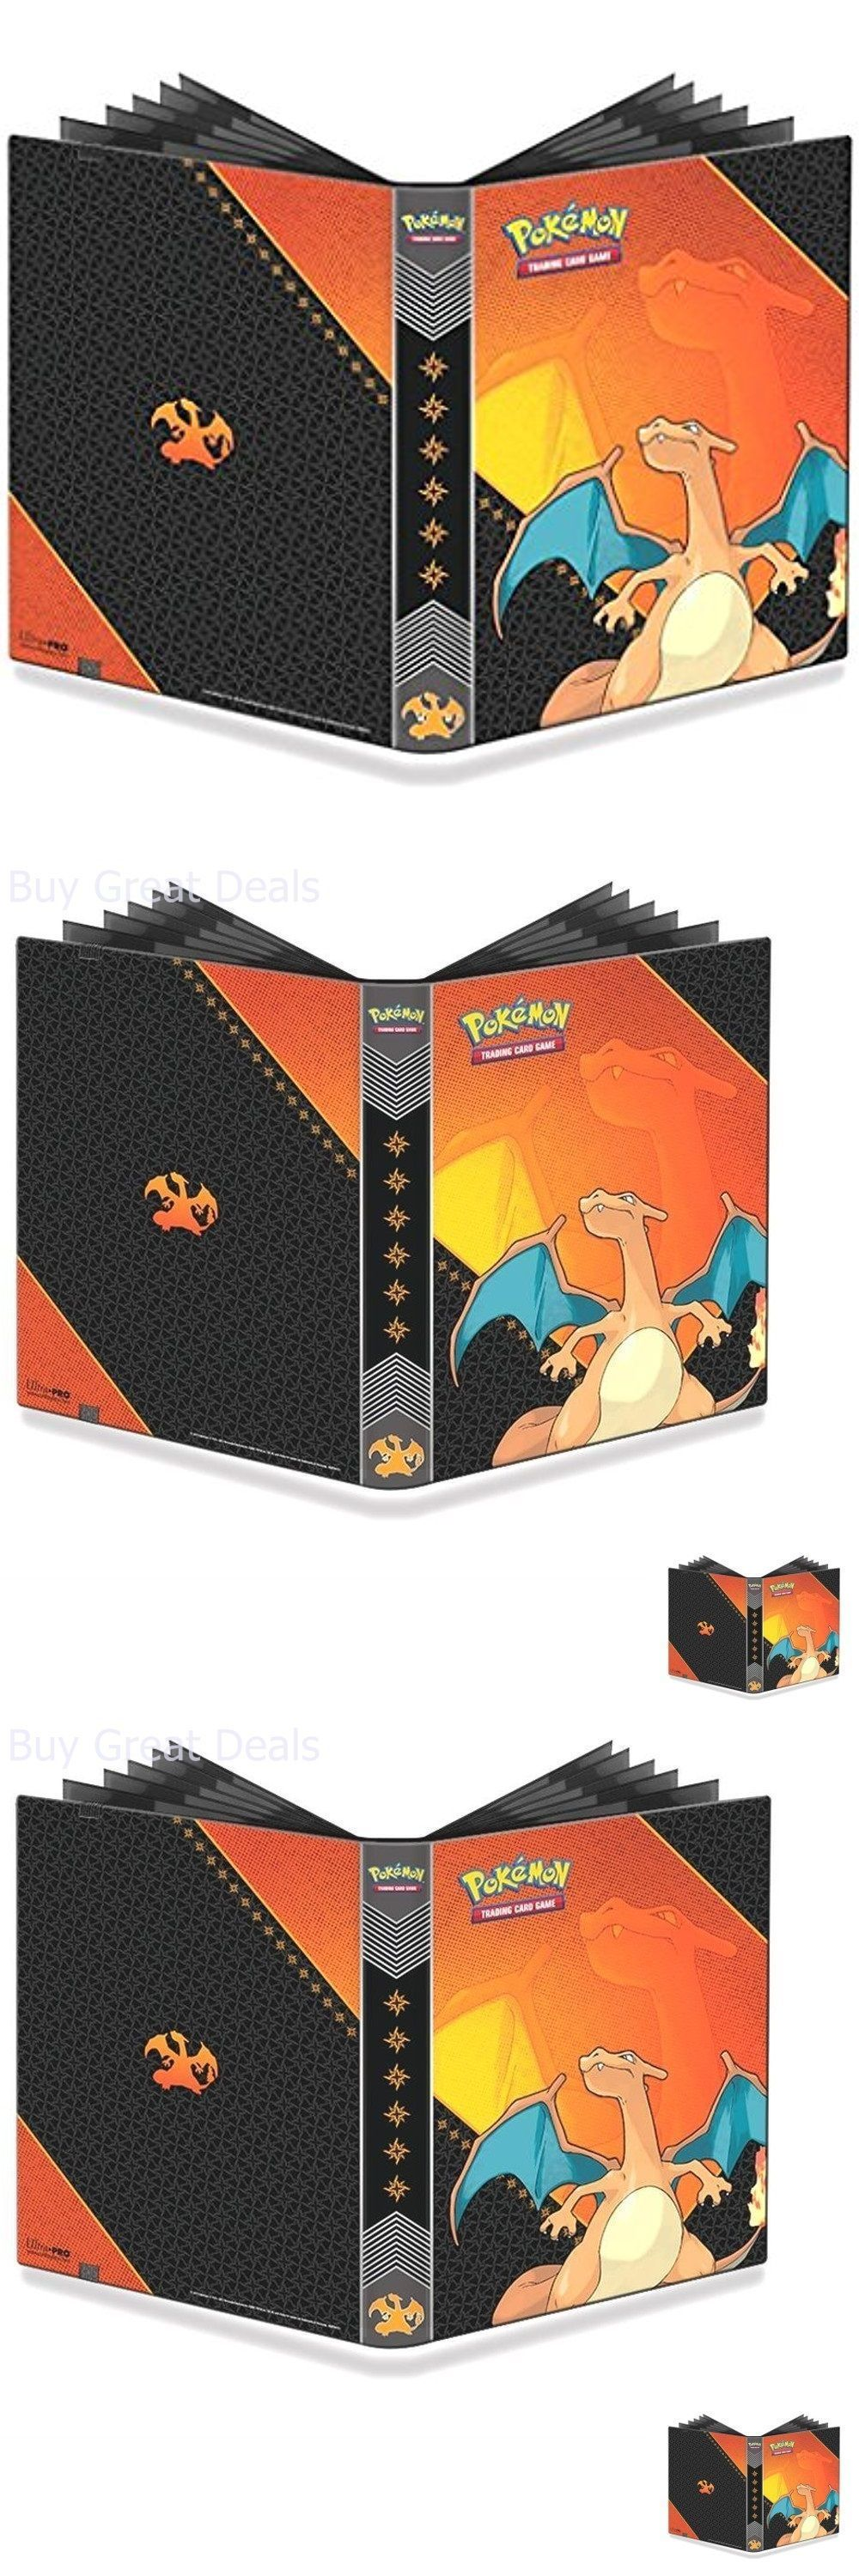 CCG Albums and Pages 183465 Ultra Pro Charizard Pokemon 9